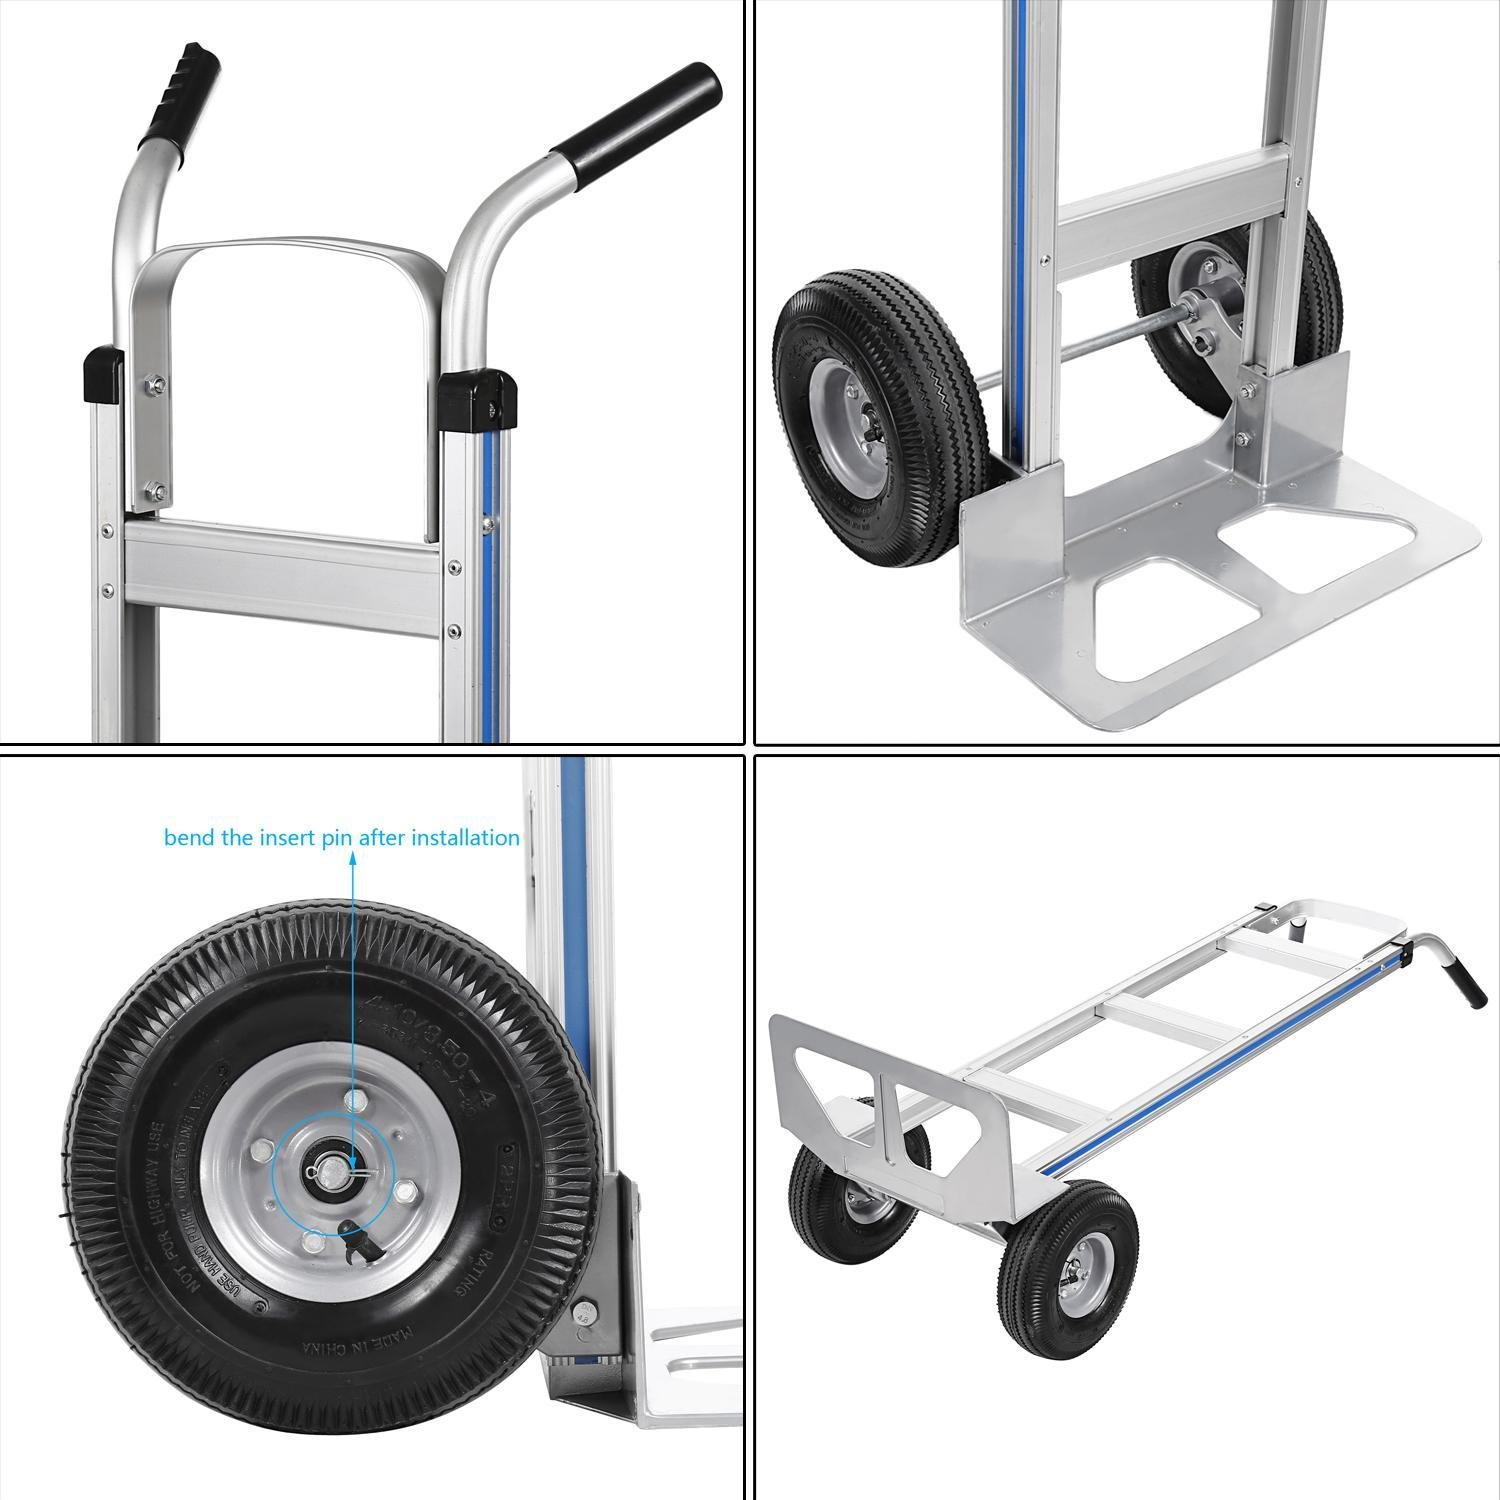 Ferty Aluminum Hand Trucks 500LBS With 2 Pneumatic Tires Dolly, Double Pistol Grip Handle Heavy Duty Trolley/Cart With 2 Wrench by Ferty (Image #7)